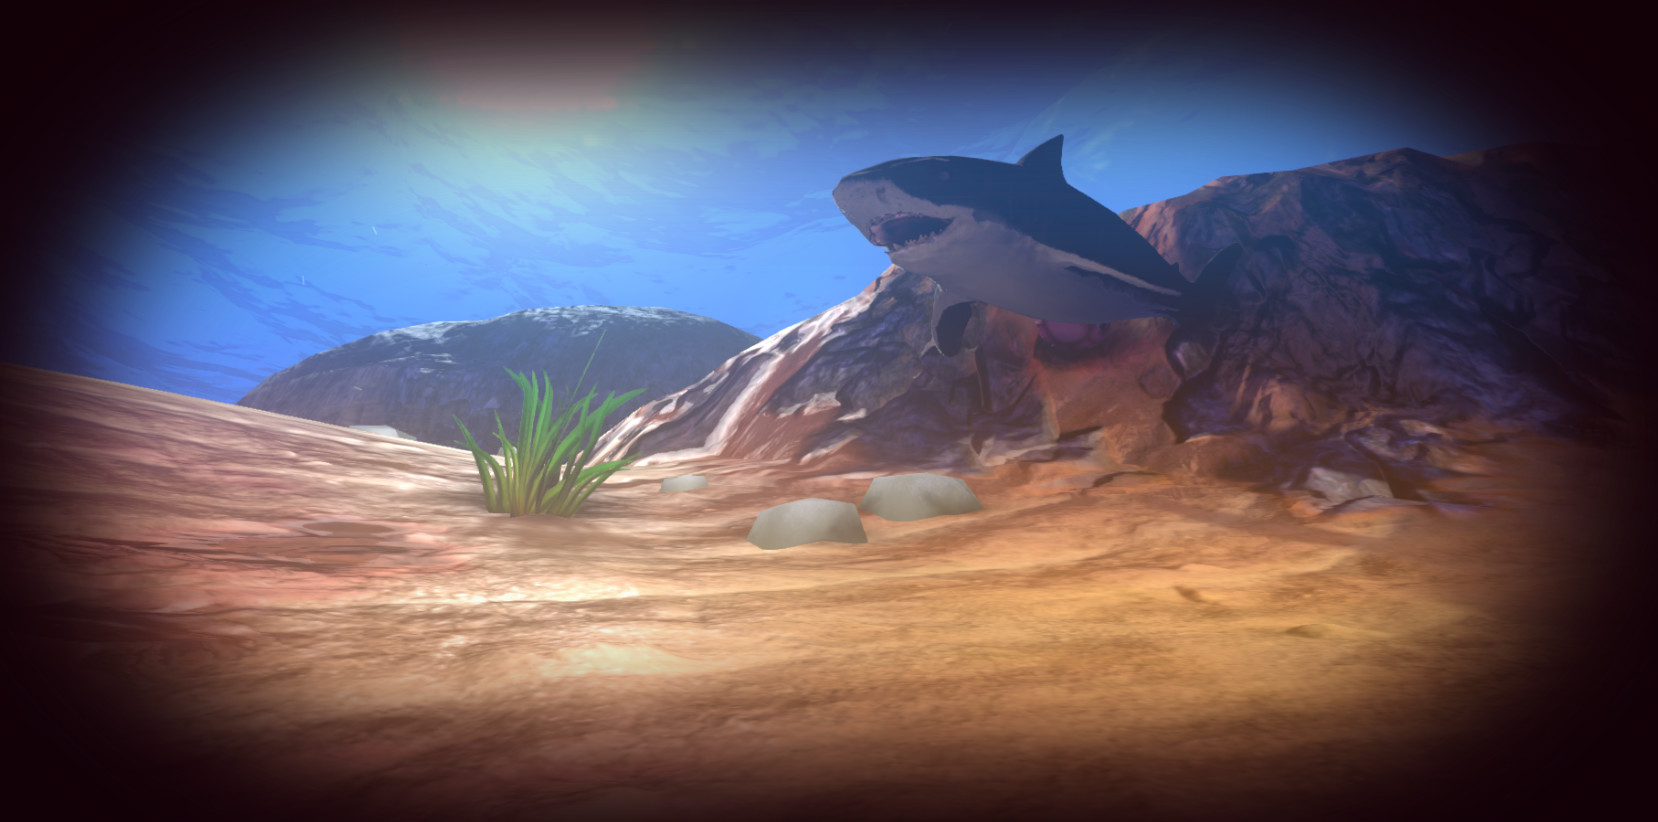 feed and grow fish download free full